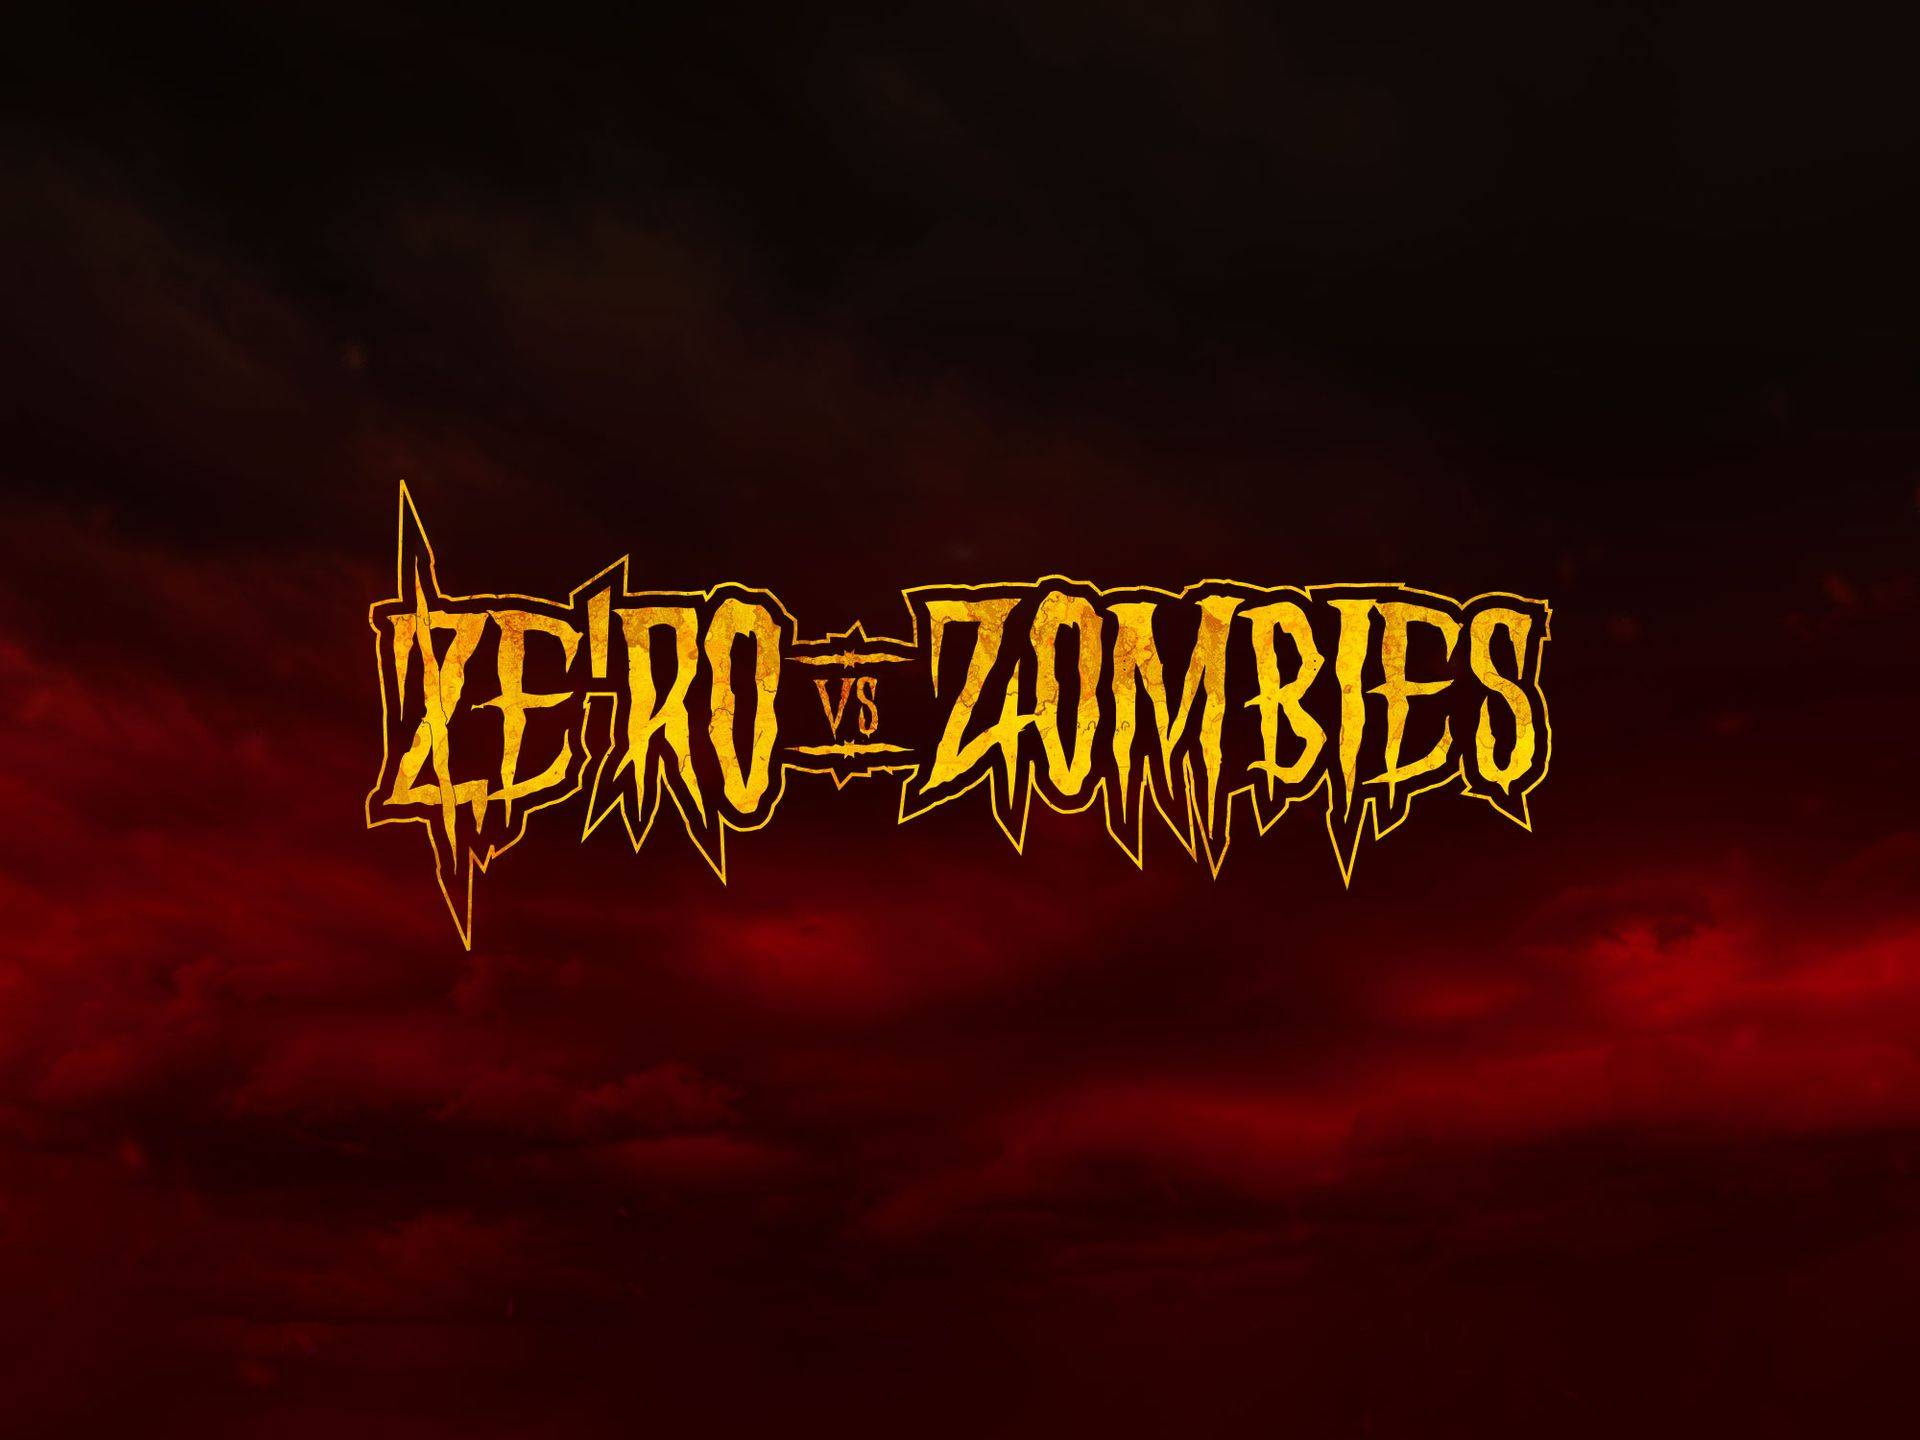 Ze'ro Vs Zombies title